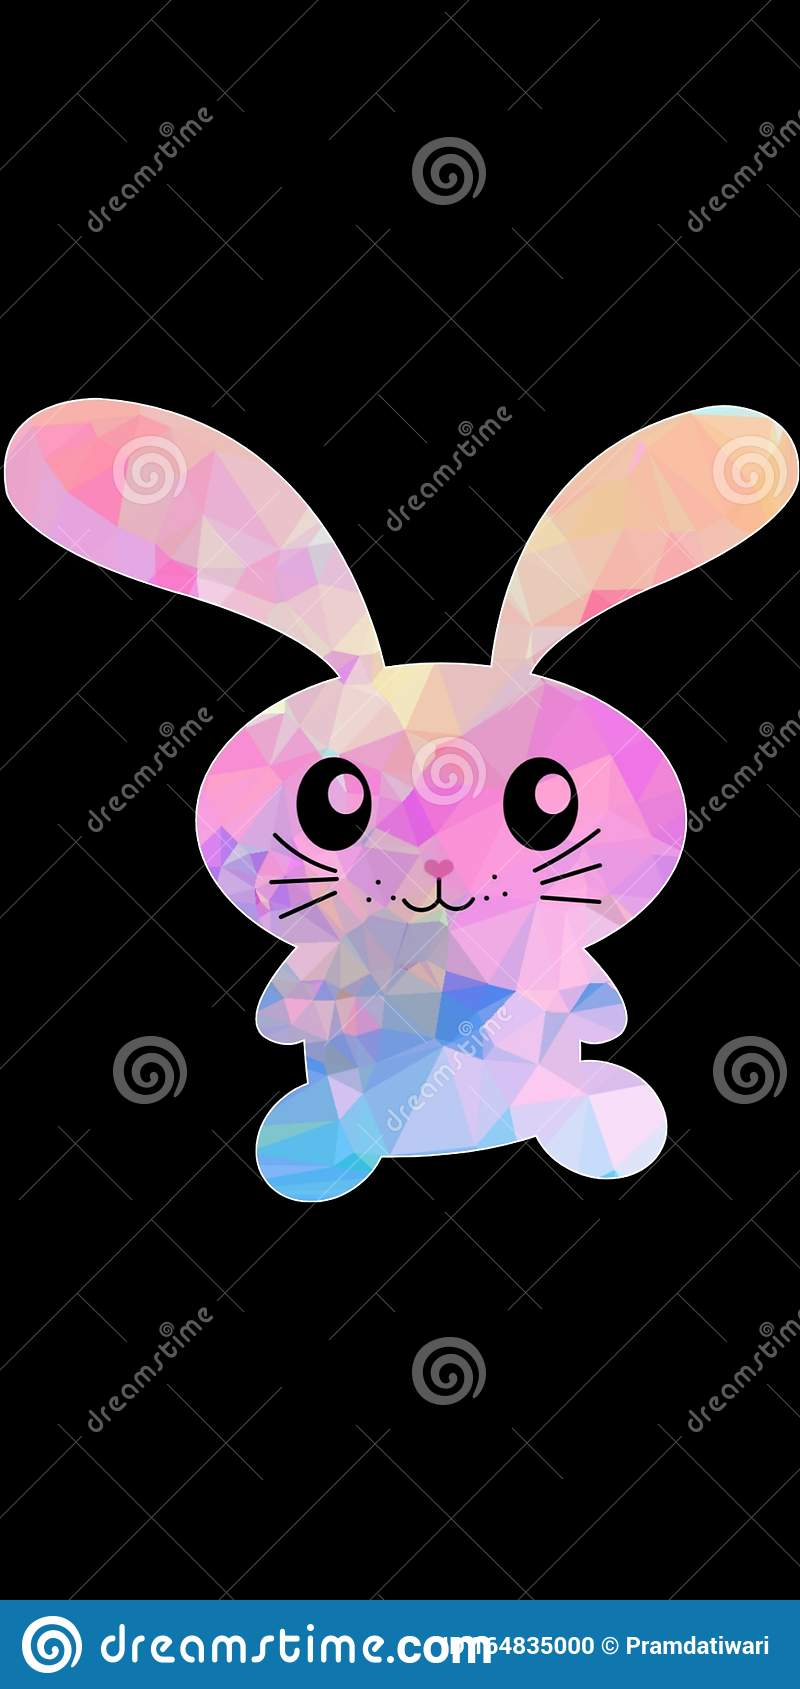 Cute Pink And Light Blue Bunny Rabbit Vector With Black Dark Background For Wallpaper Prints Stock Photo Image Of Theme Iphone 164835000